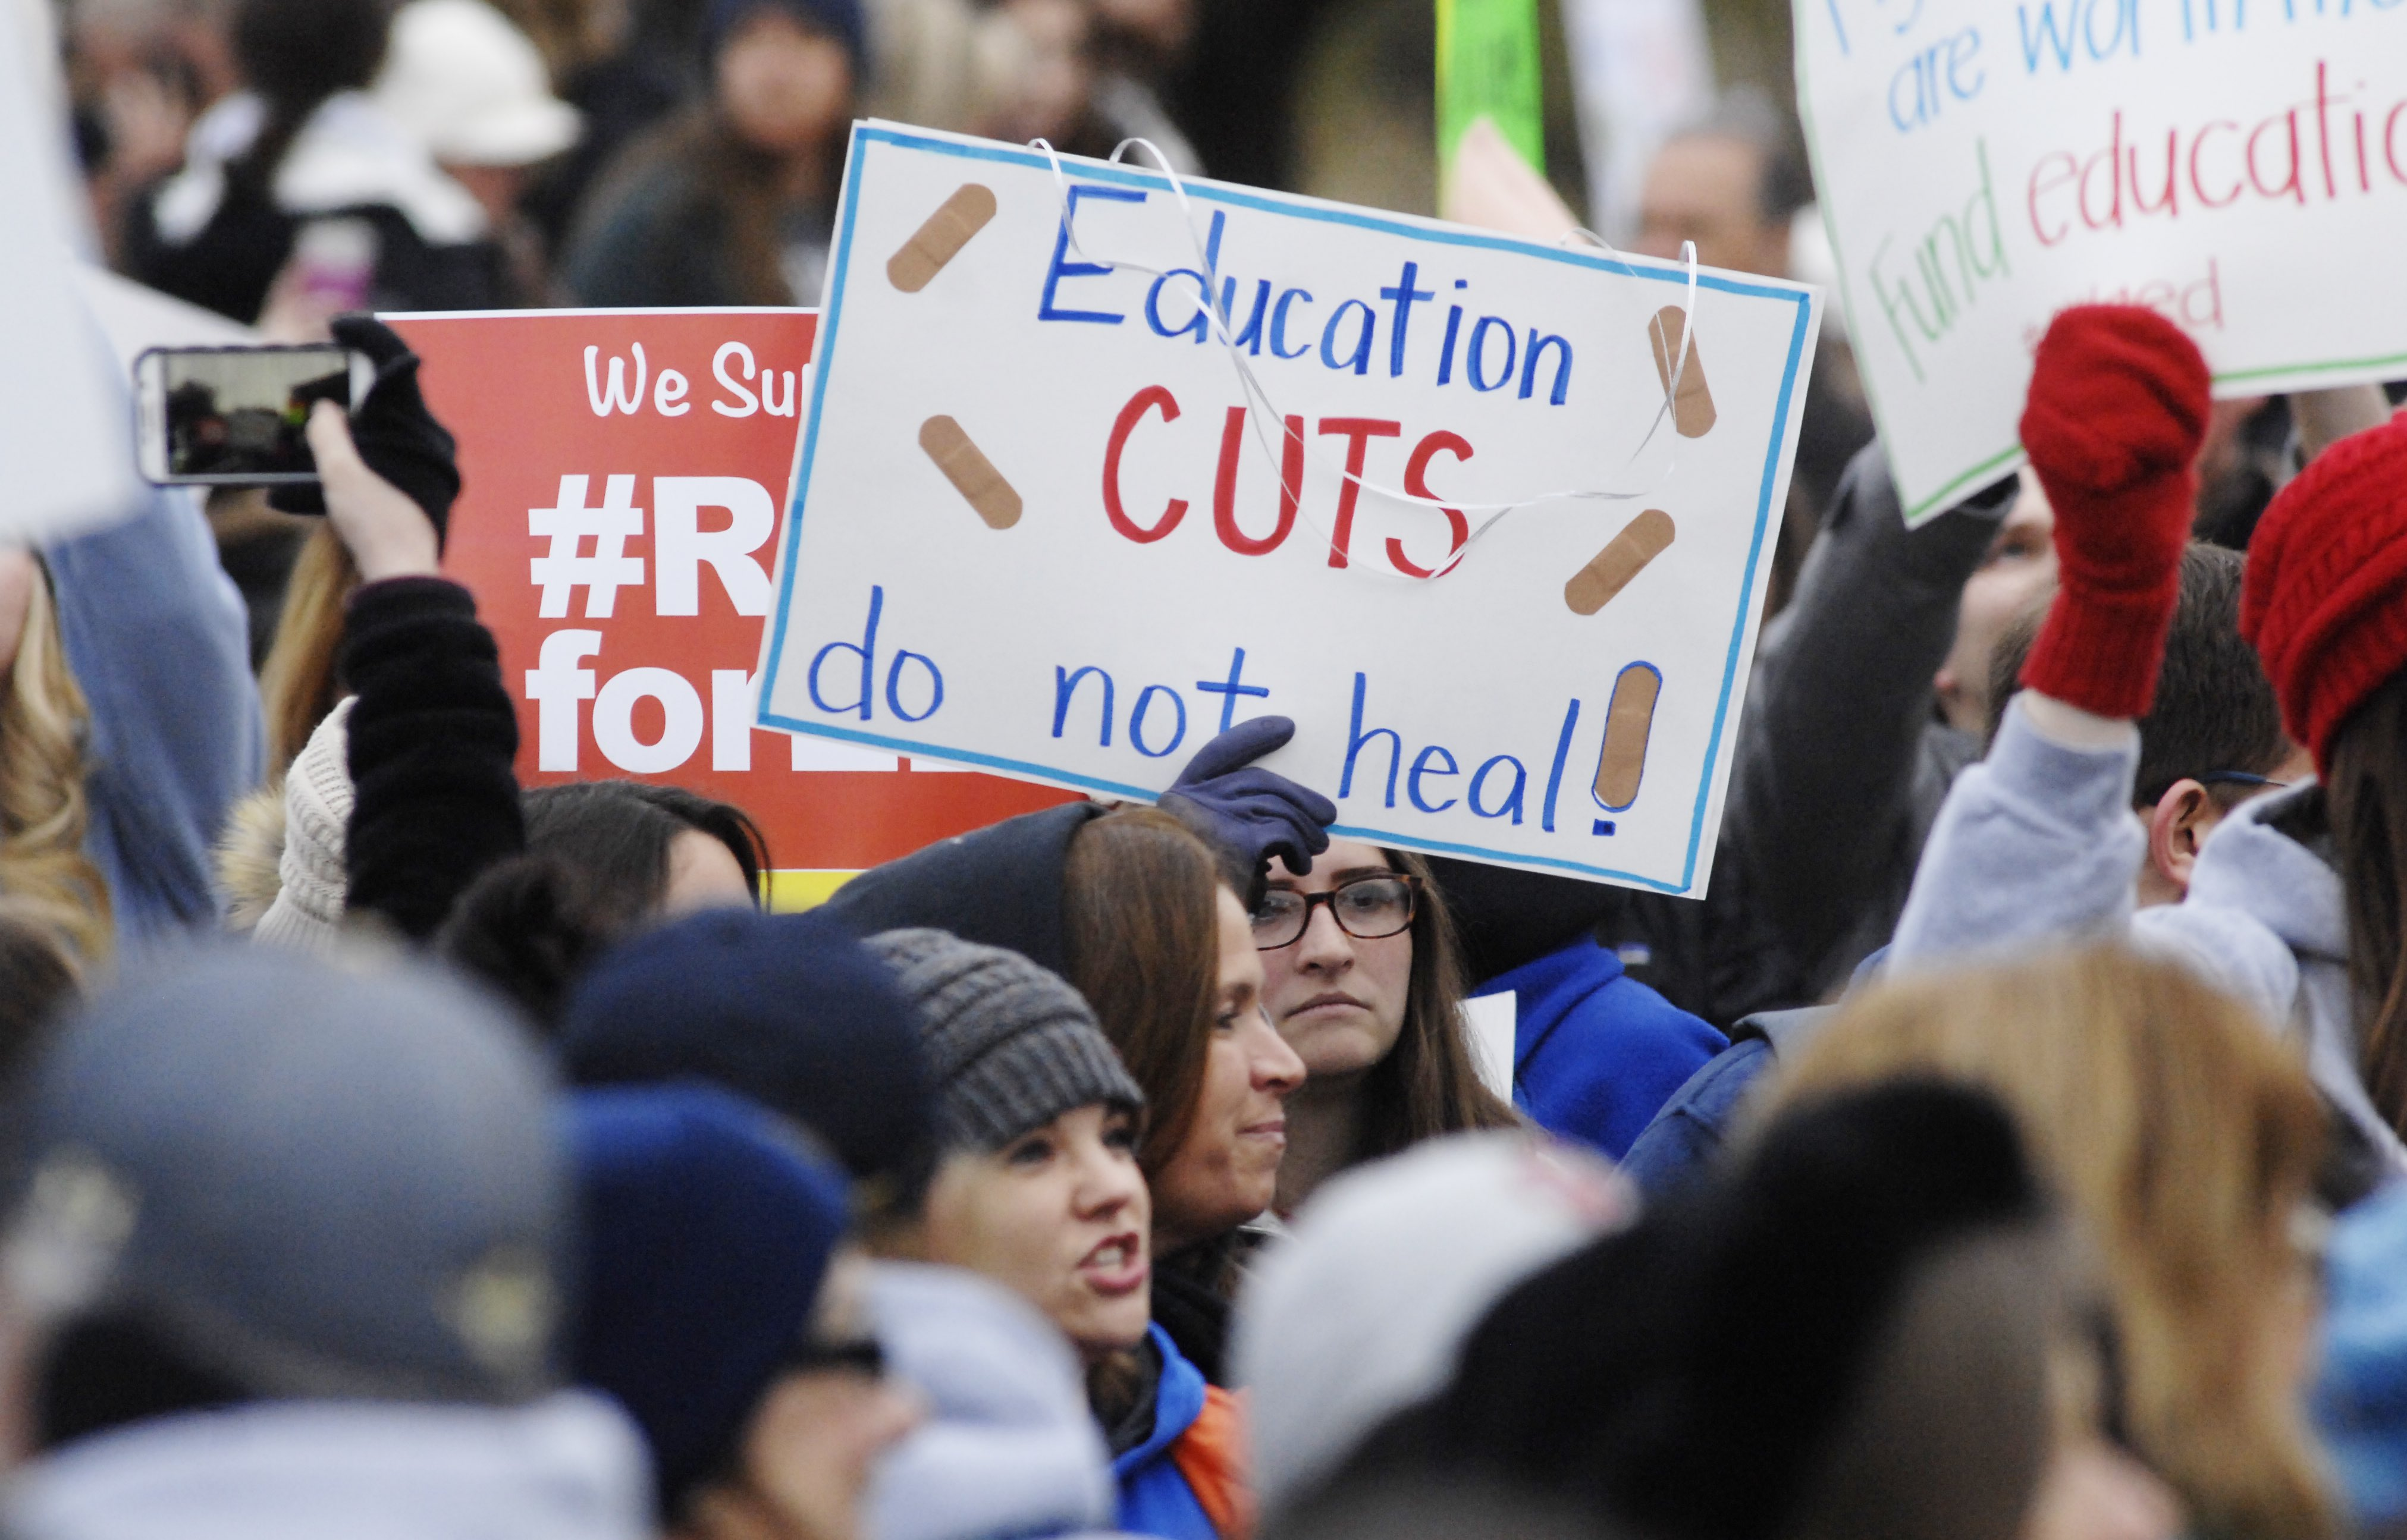 Teachers Push for Increase in Education Funding